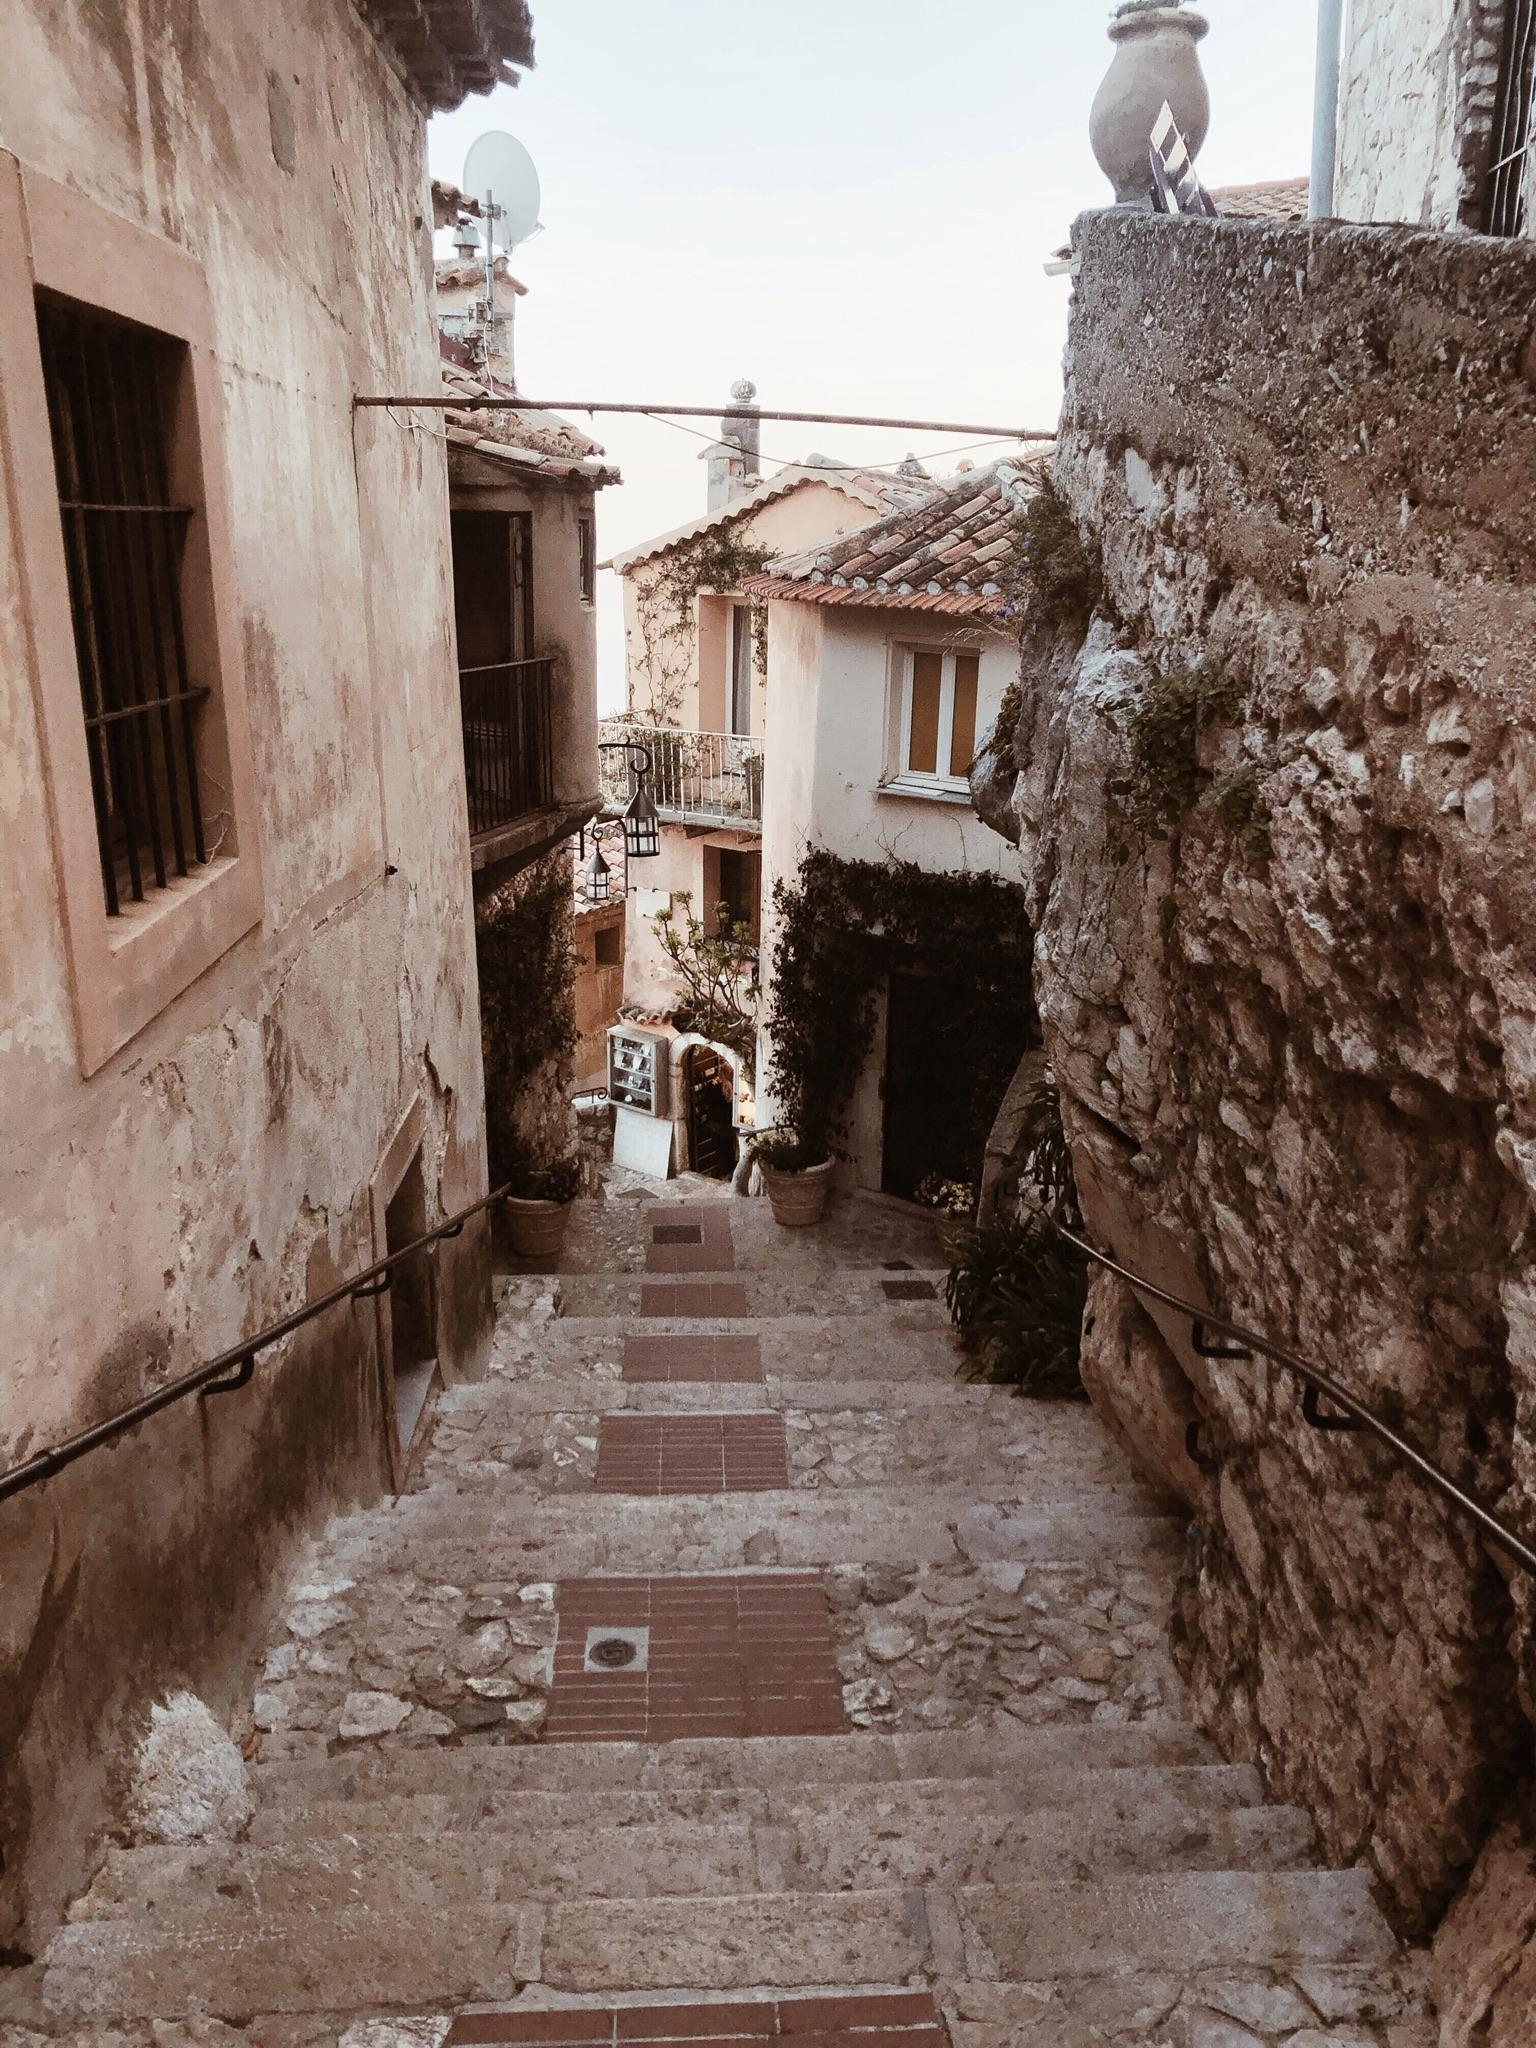 walking down the streets in #eze #ezevillage #france #frenchriviera #cotedazur